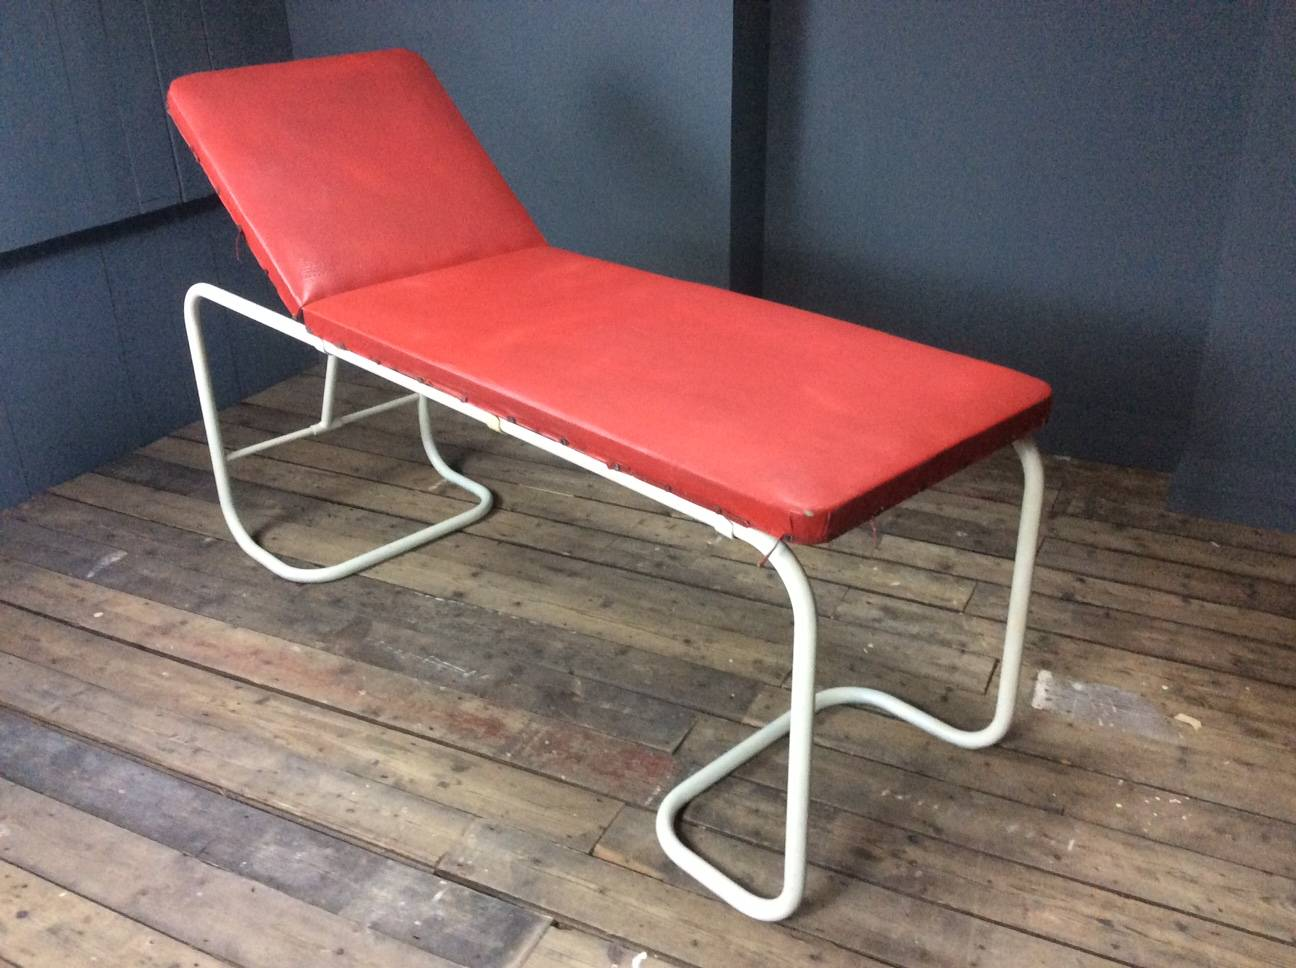 Doctors Examination Couch-Red